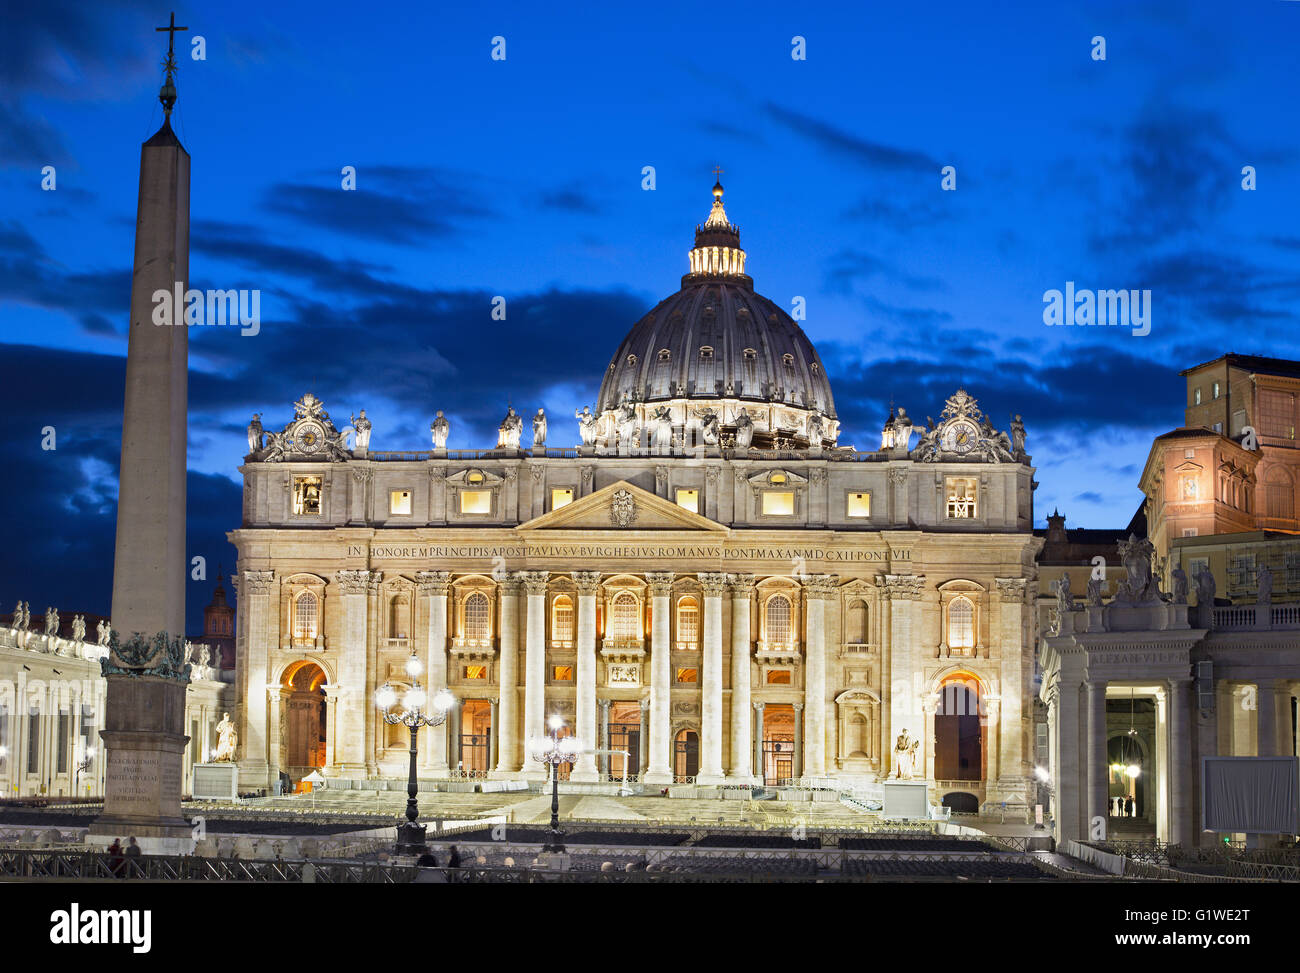 Rome - St. Peter's Basilica - 'Basilica di San Pietro' and the square at dusk. - Stock Image